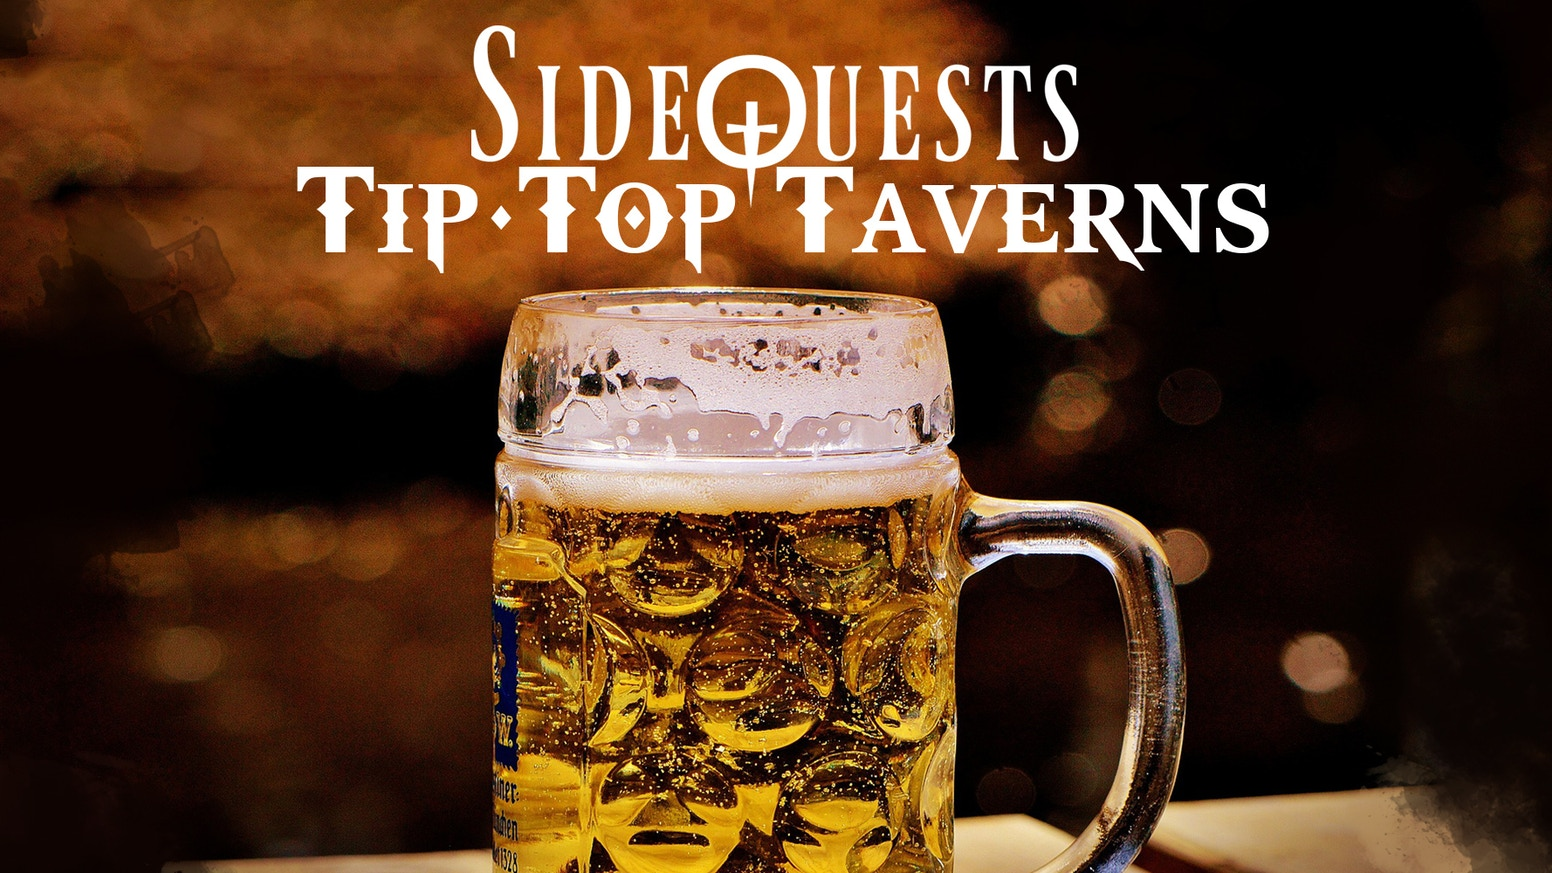 Twenty tremendous taverns, instantly generated and ready to implement into DND, Pathfinder, or the fantasy RPG of your choice.